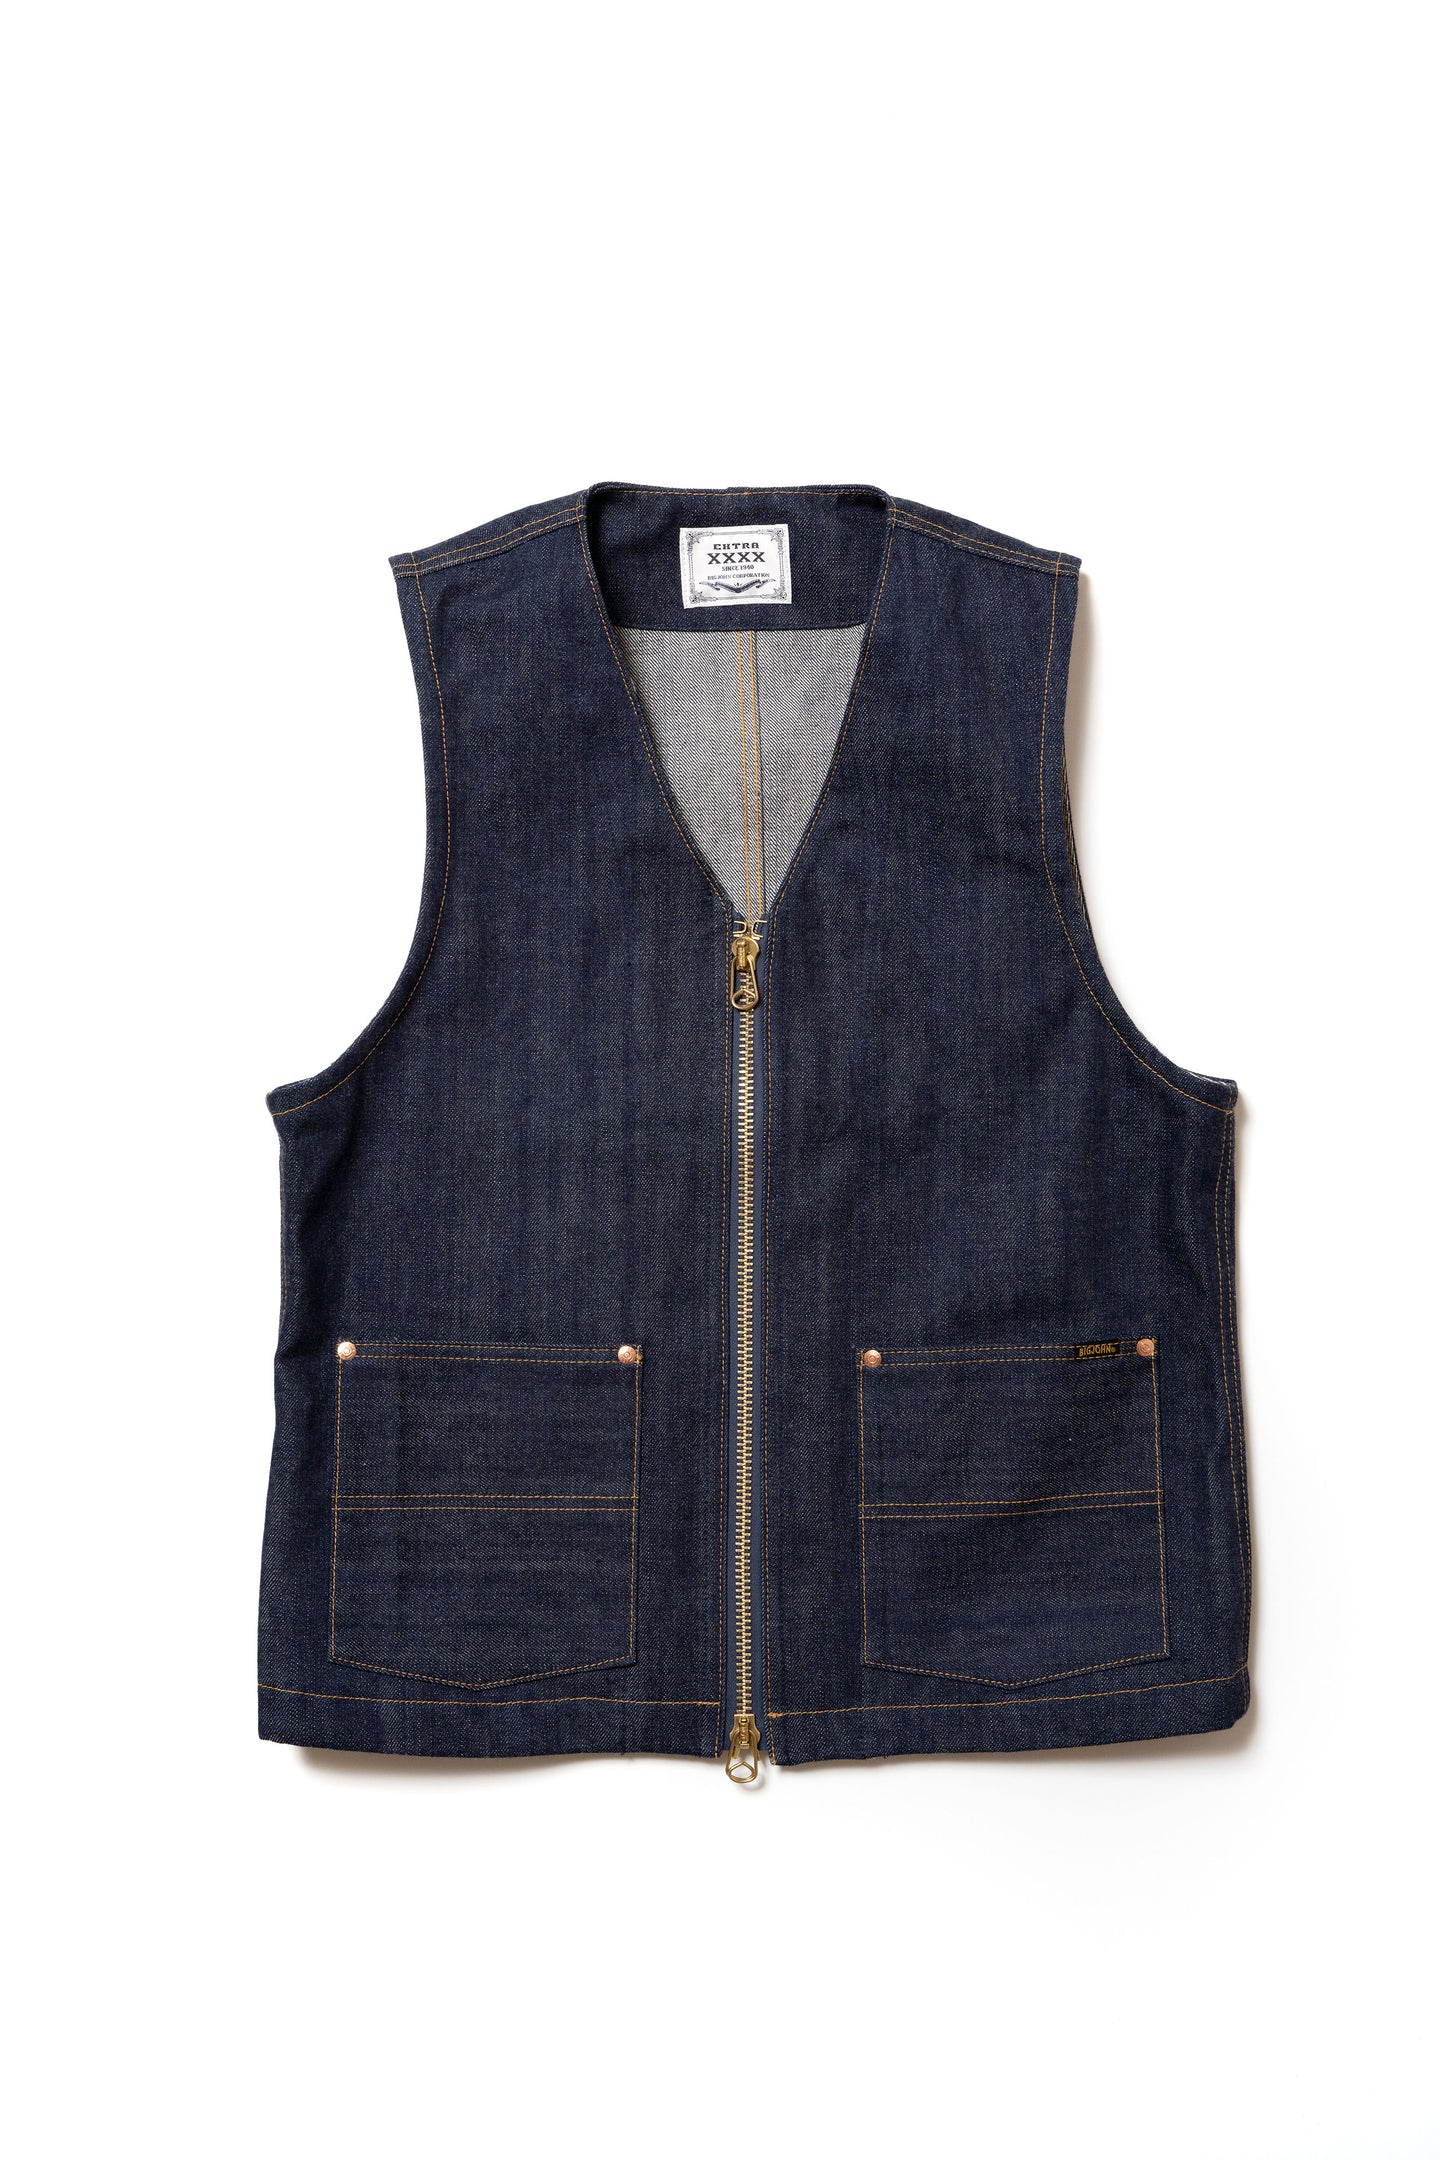 XX602Z (000)『XXXX-EXTRA』ZIP UP VEST